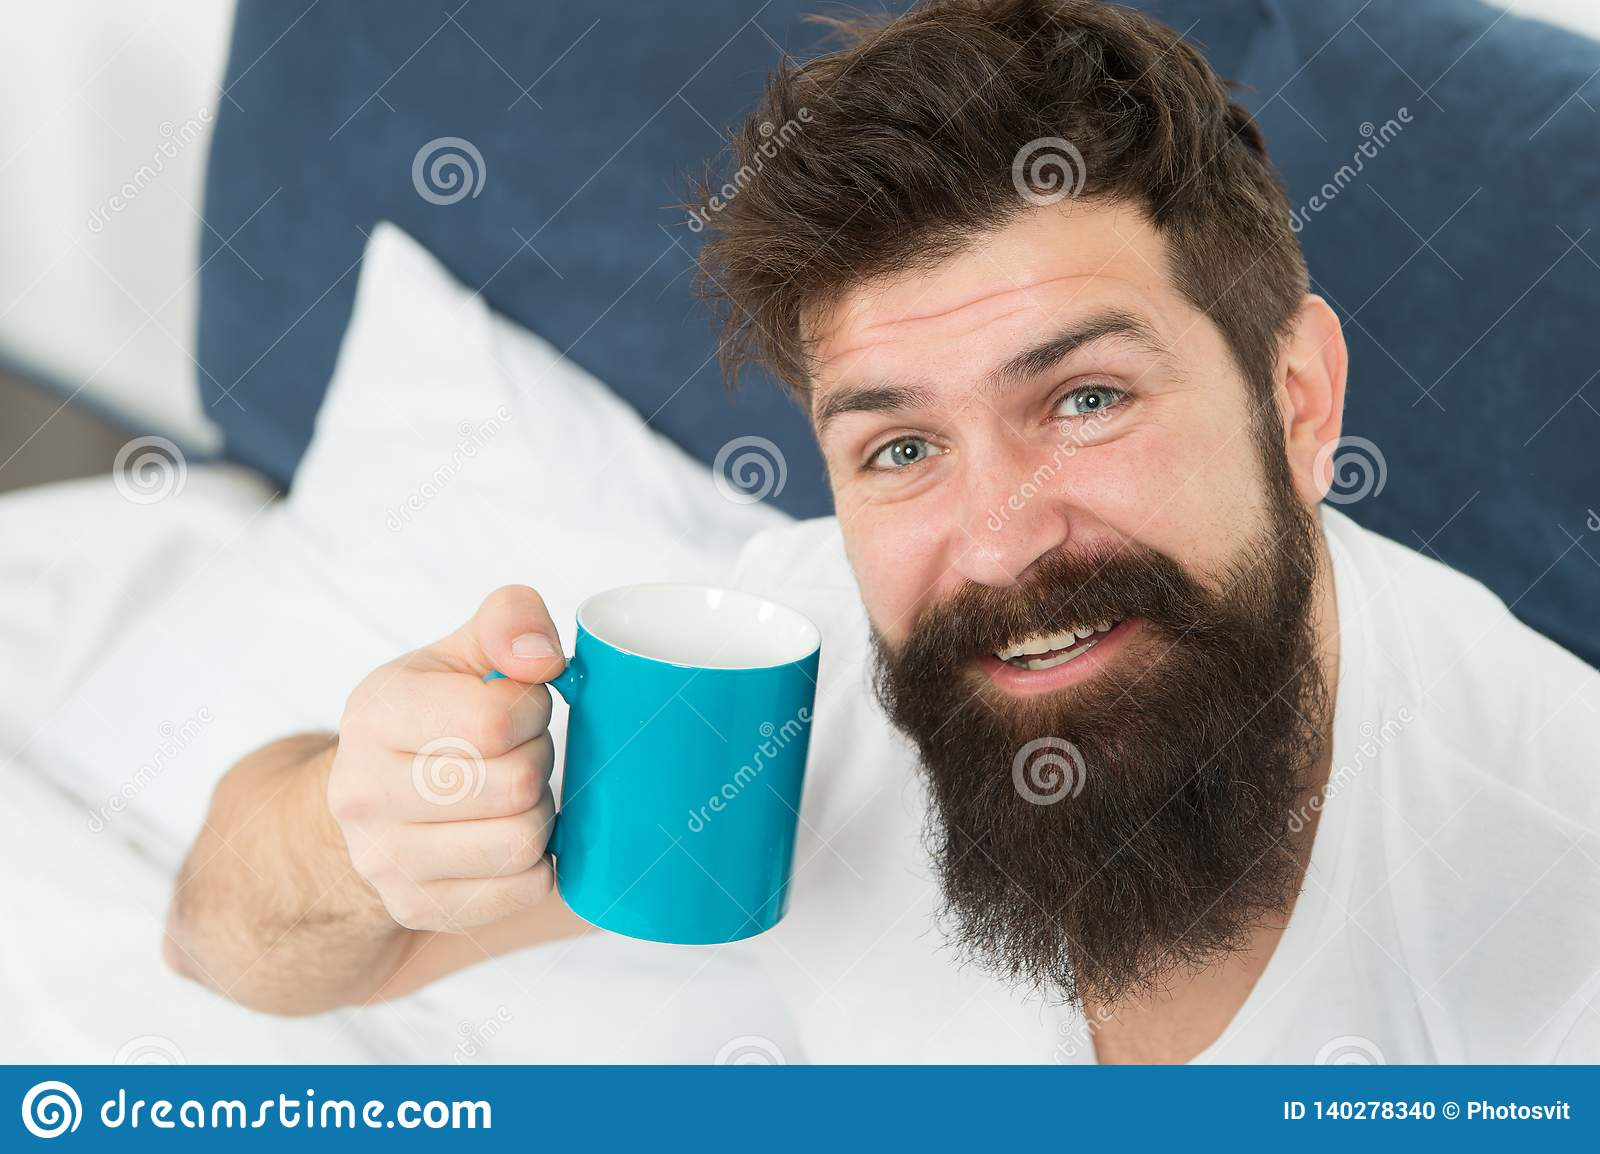 Caffeine addicted. Coffee fills you with energy. Good gay begins from cup of coffee. Coffee affects body. Man handsome